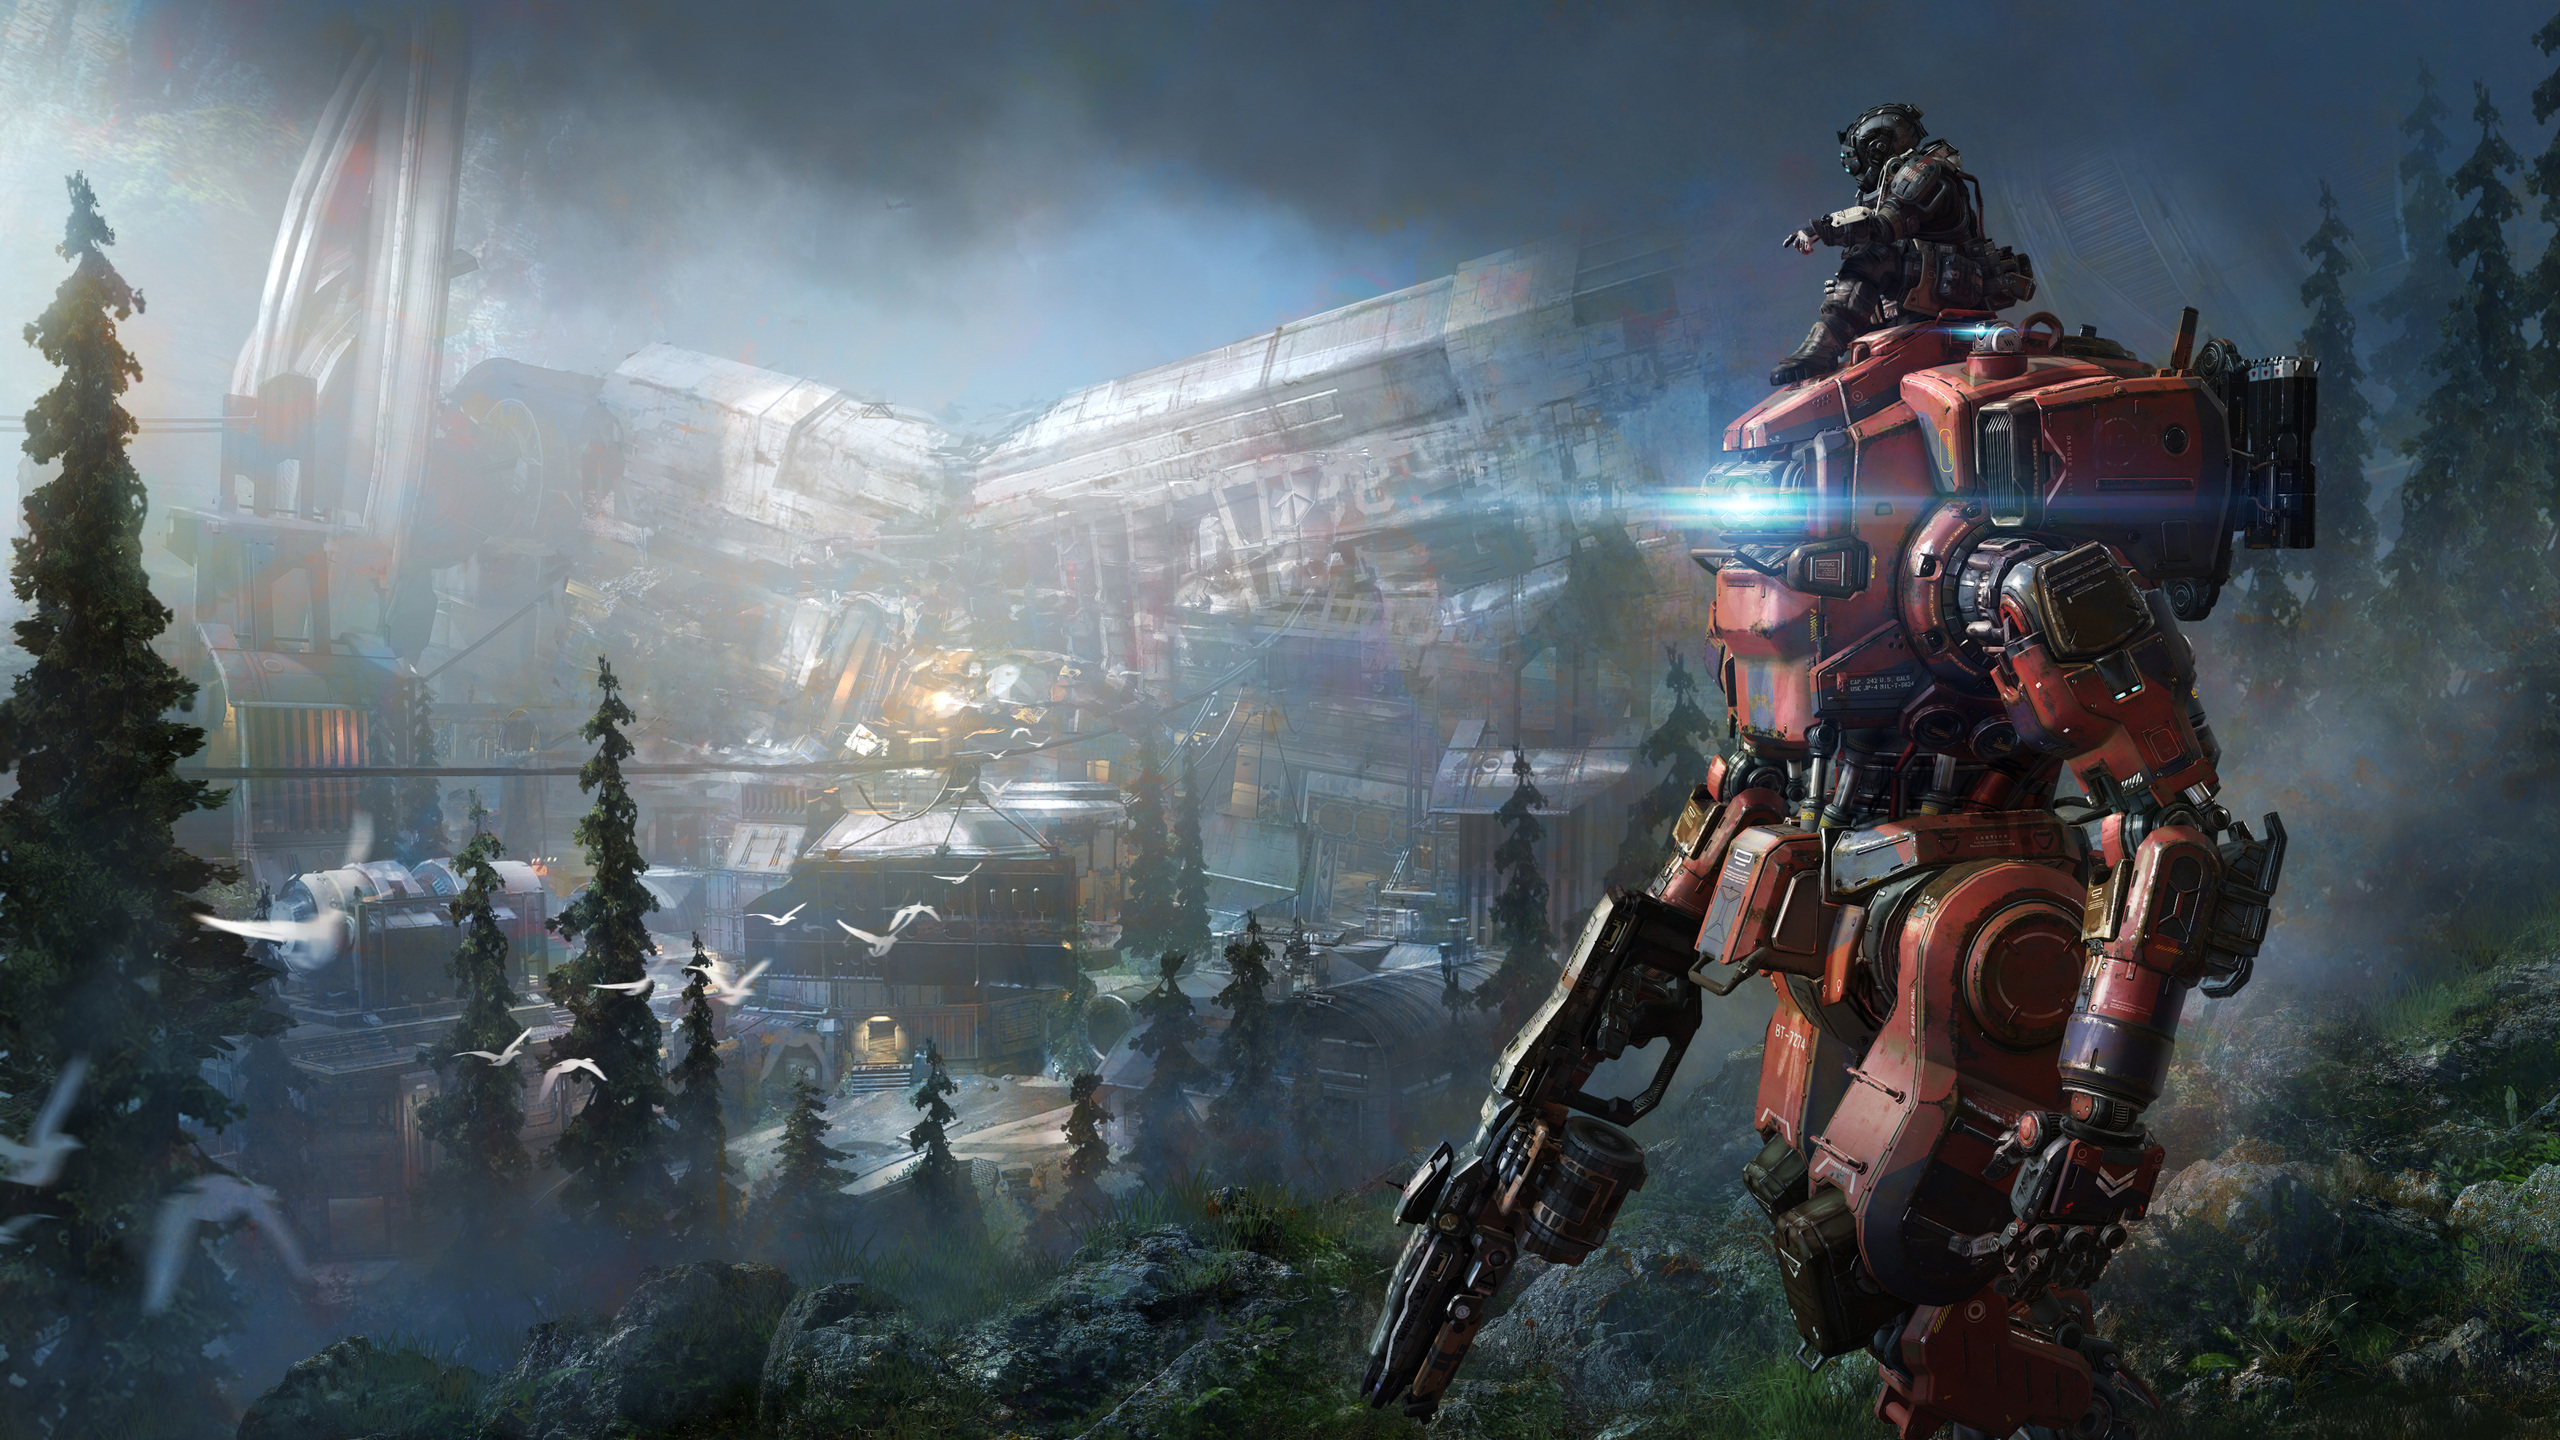 titanfall 2 wallpaper  2560x1440 4k Titanfall 2 2017 1440P Resolution HD 4k Wallpapers ...